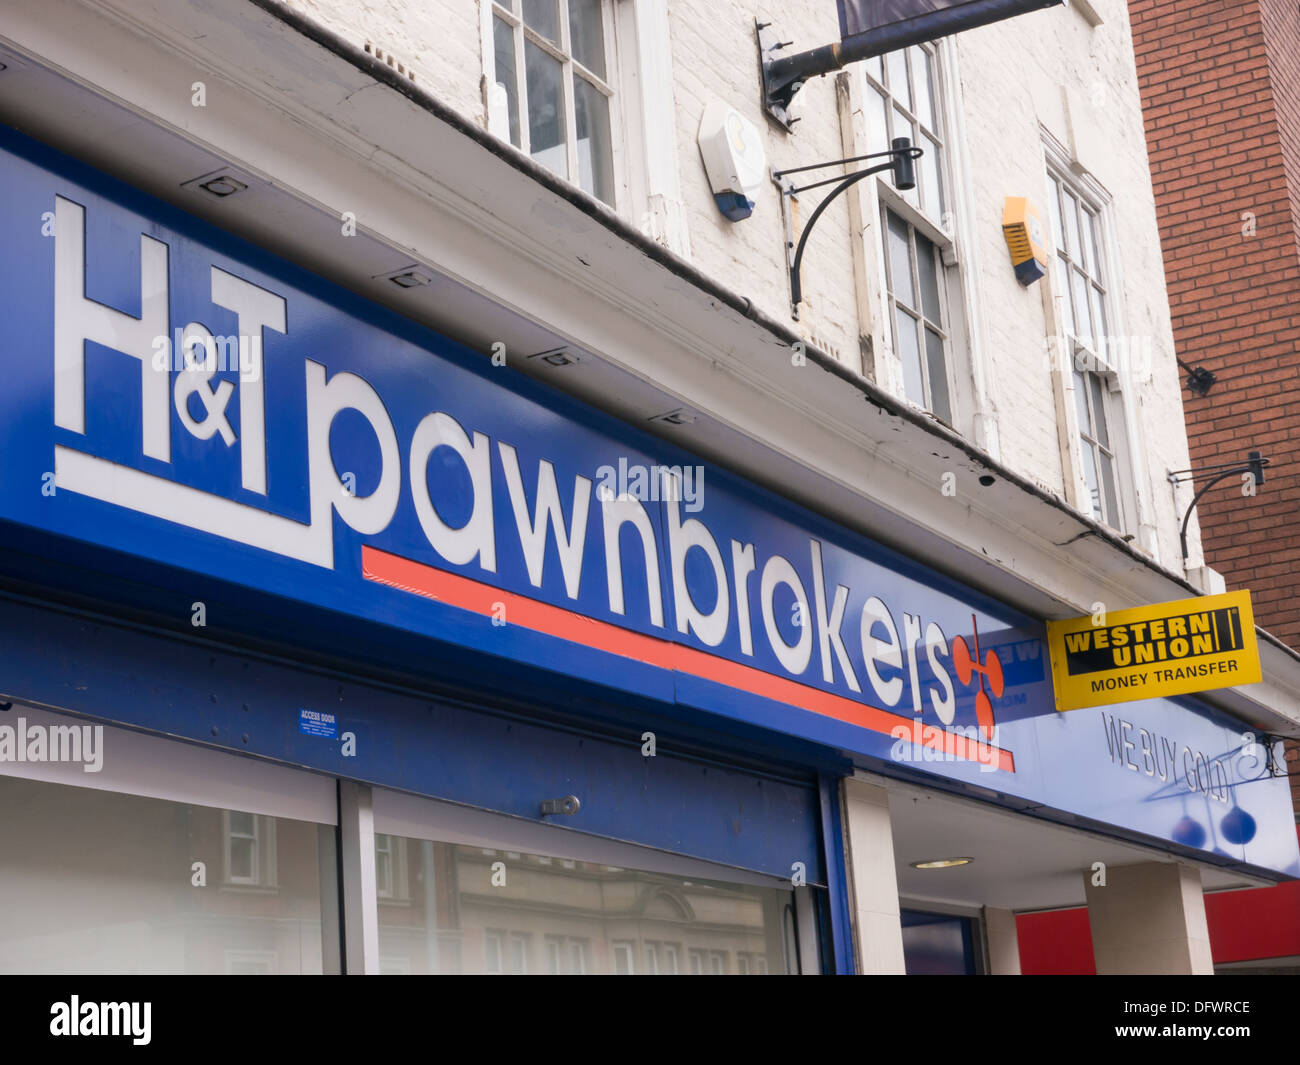 No fax payday loans south africa photo 8